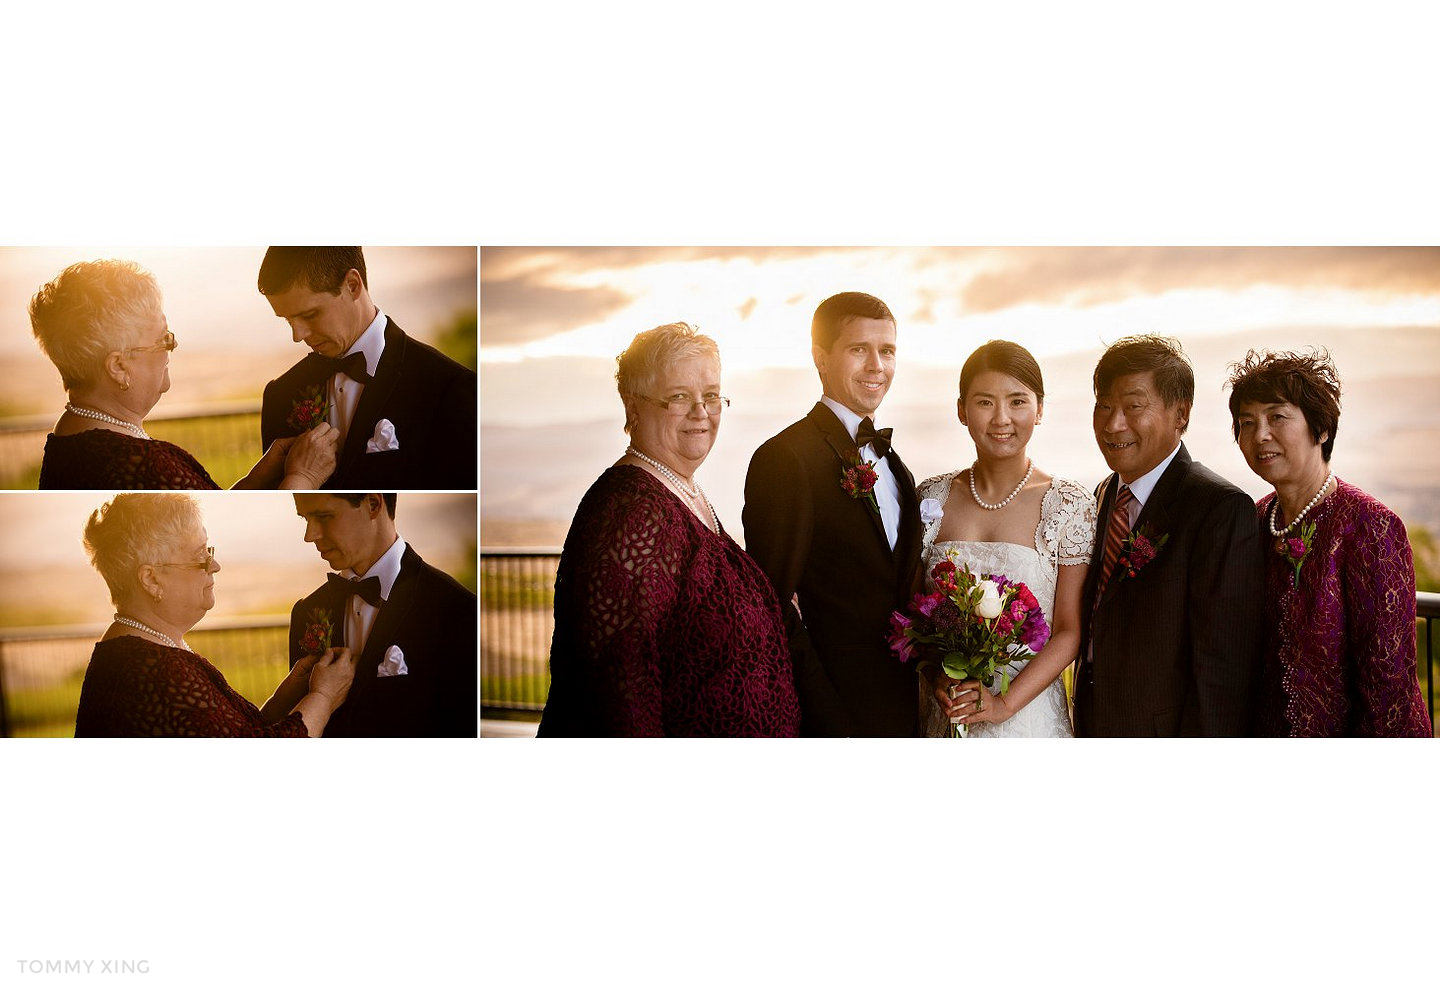 Tommy Xing Photography Seattle CAVE B ESTATE WINERY wedding 西雅图酒庄婚礼 36.jpg